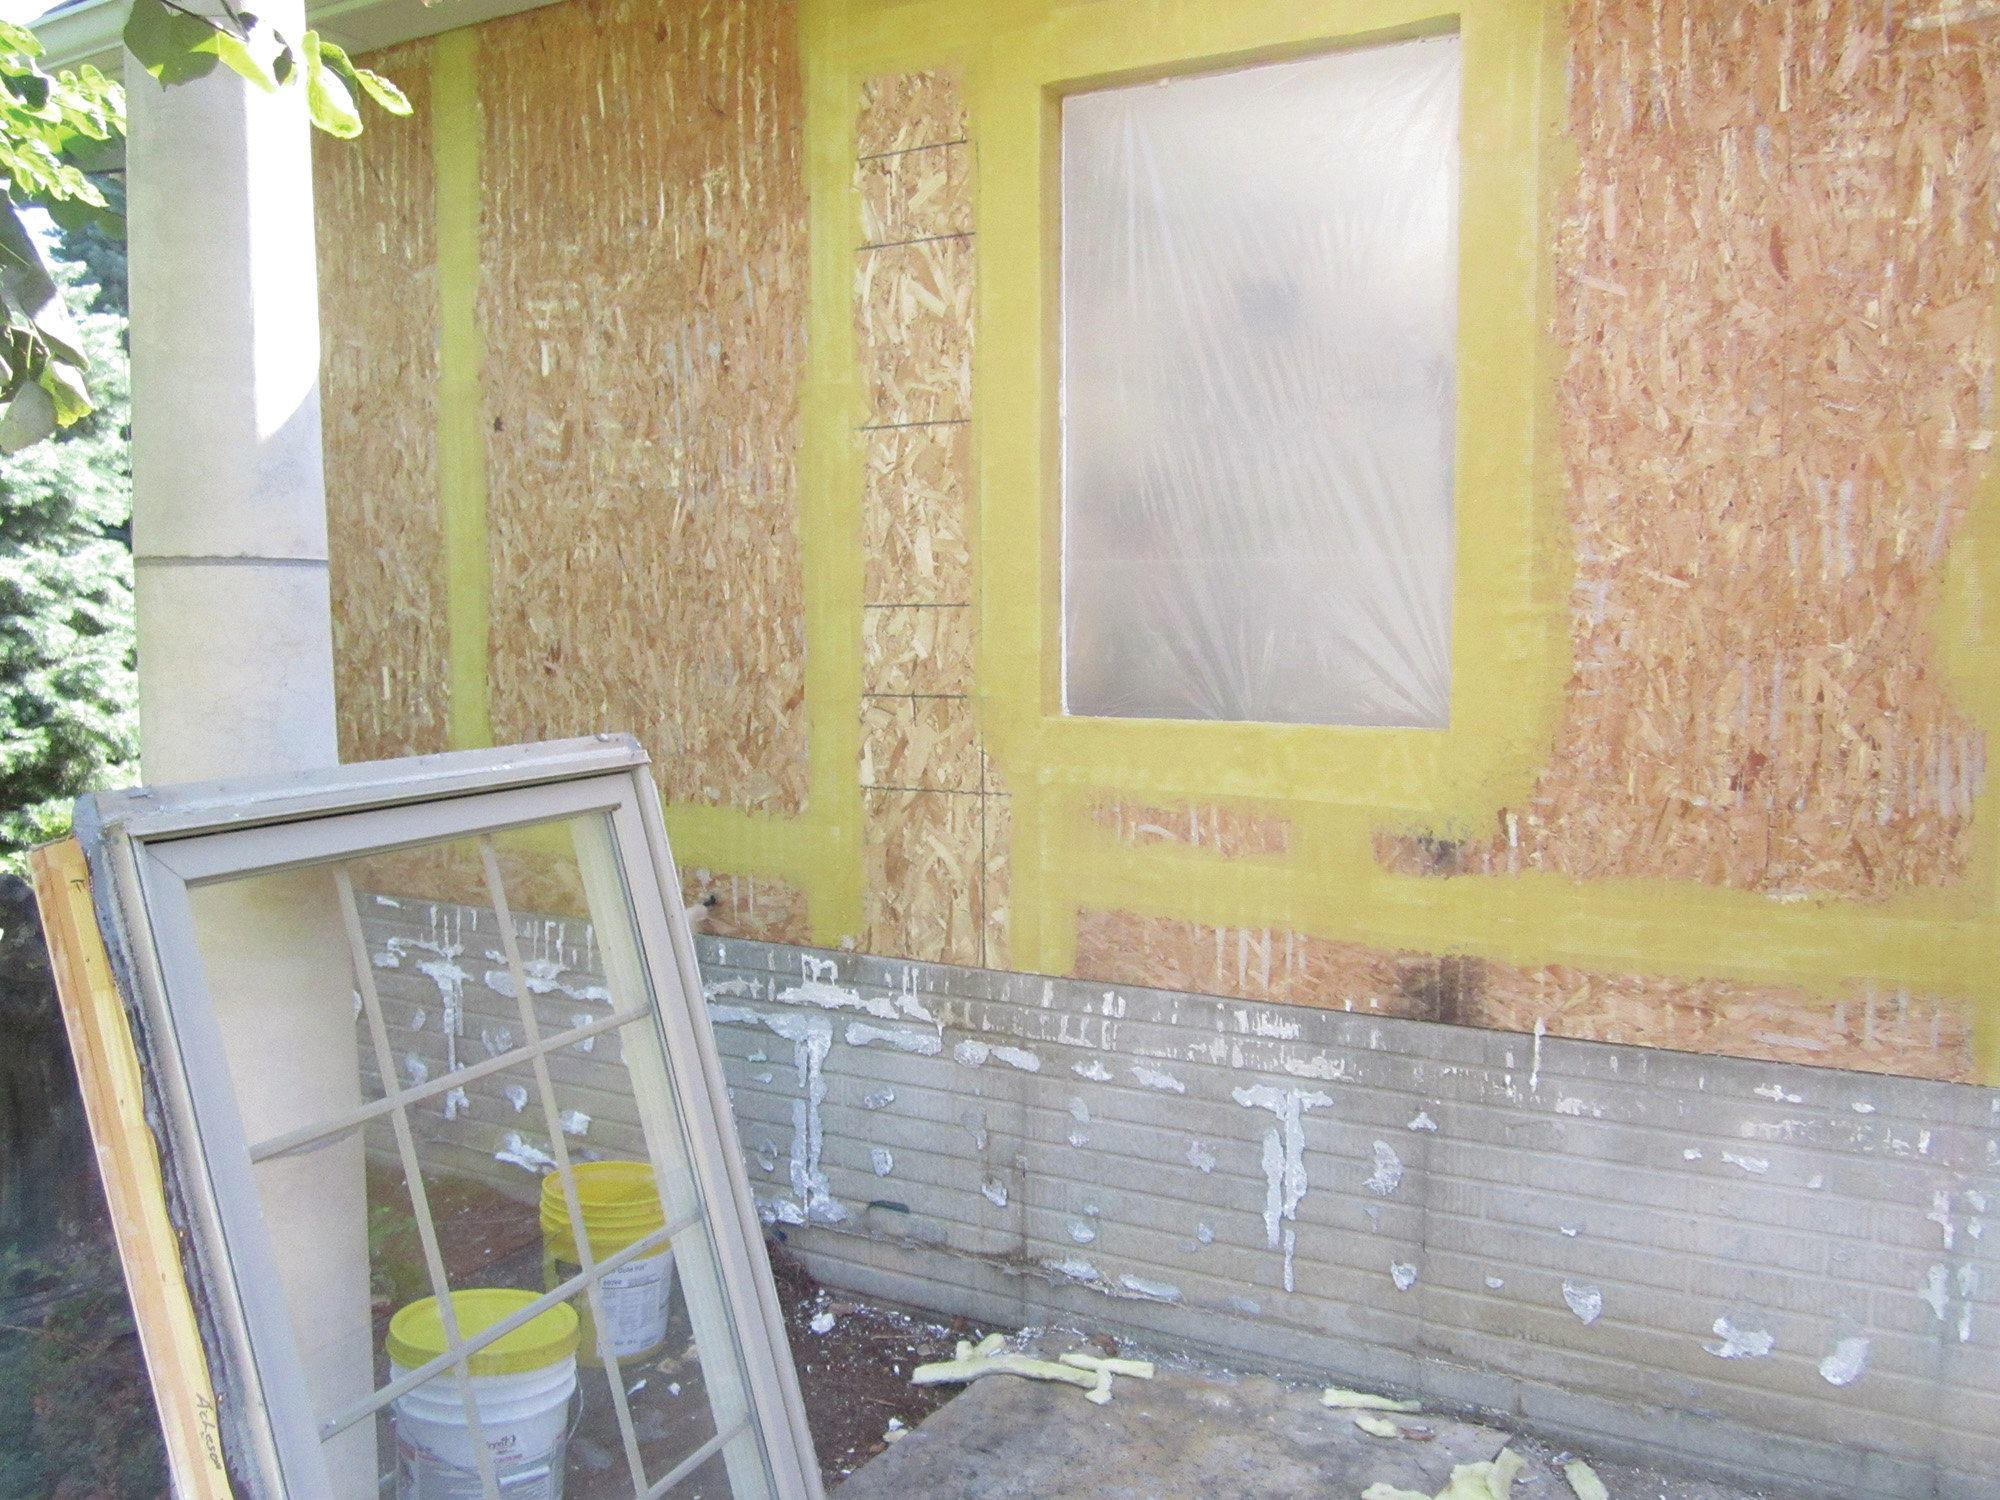 Synthetic Stucco Without Failures Jlc Online